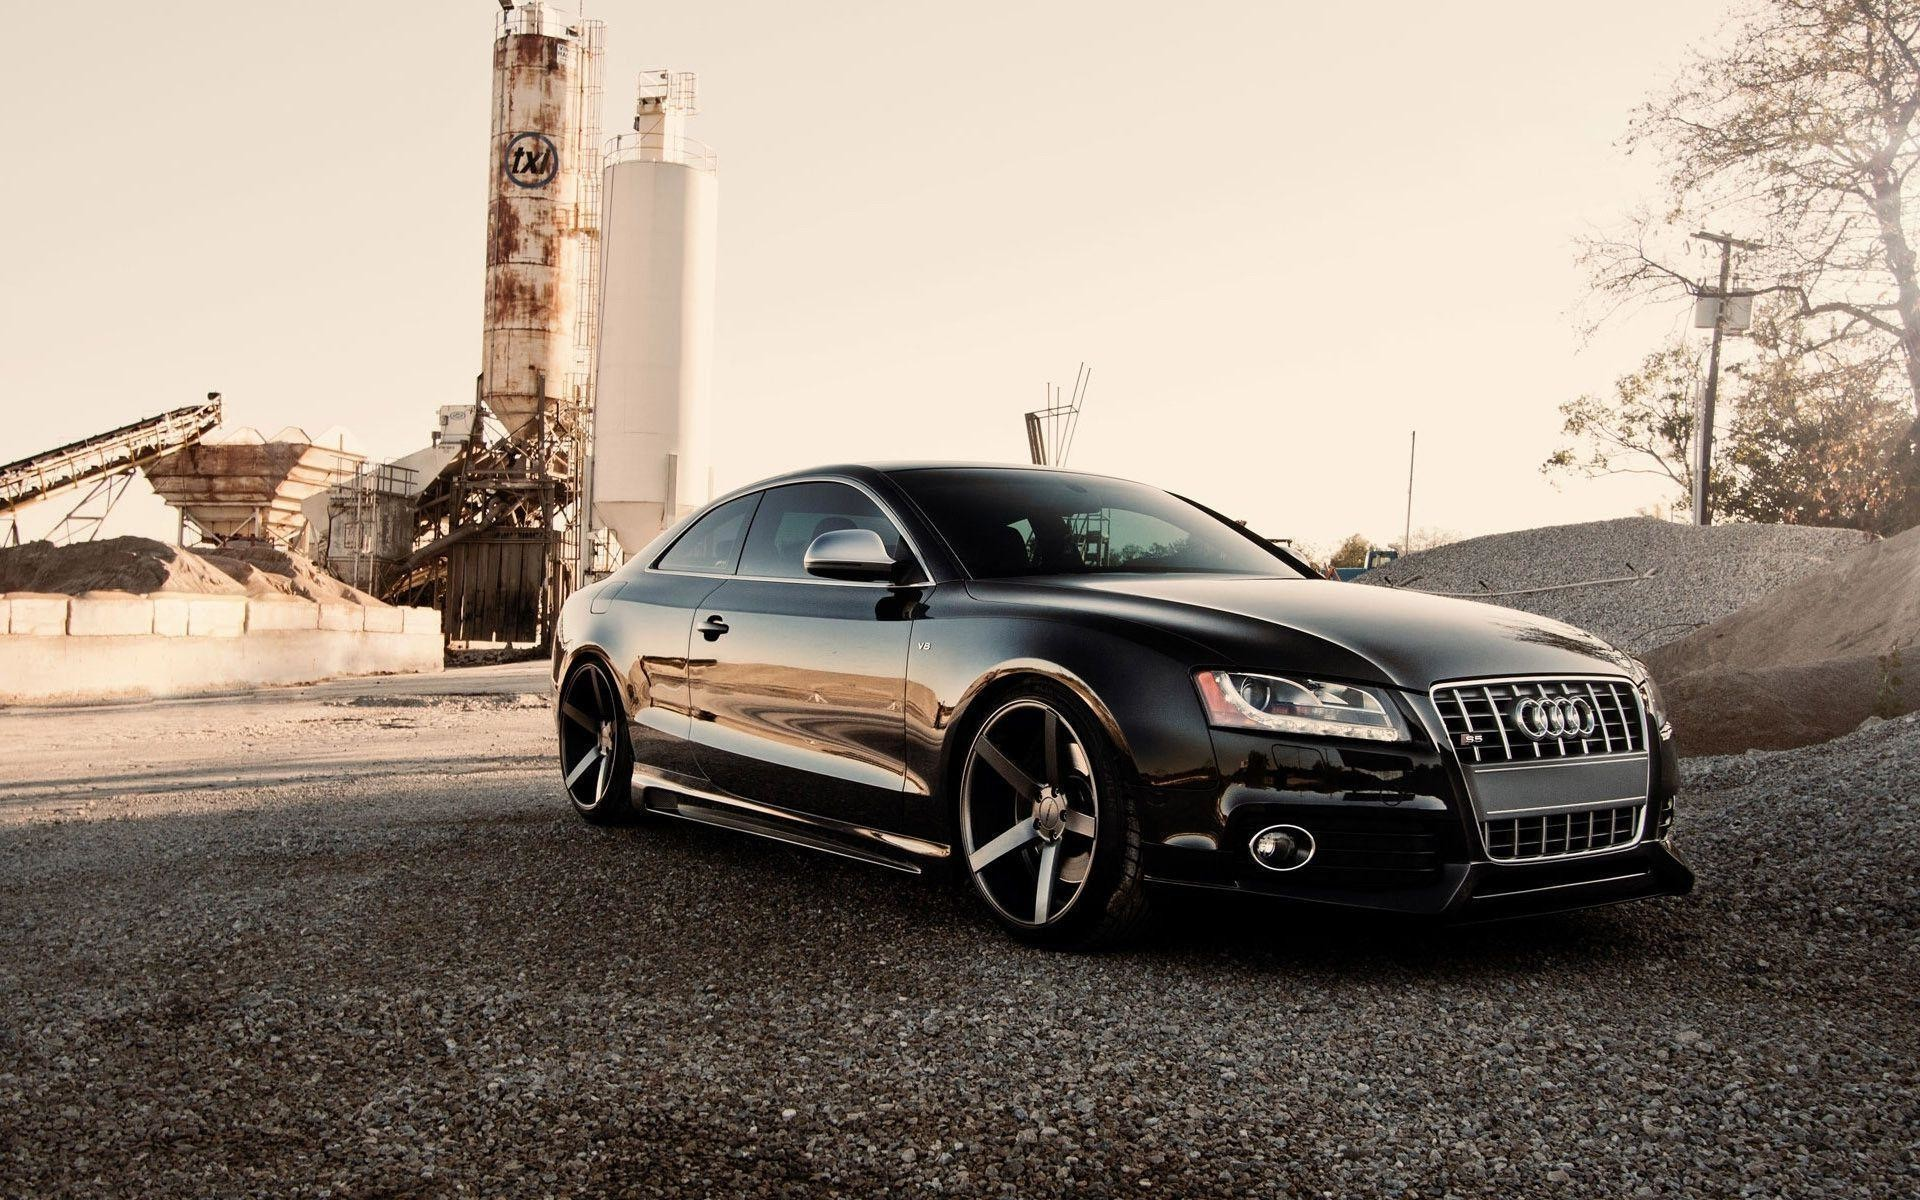 Res: 1920x1200, Audi S5 Wallpapers - Full HD wallpaper search